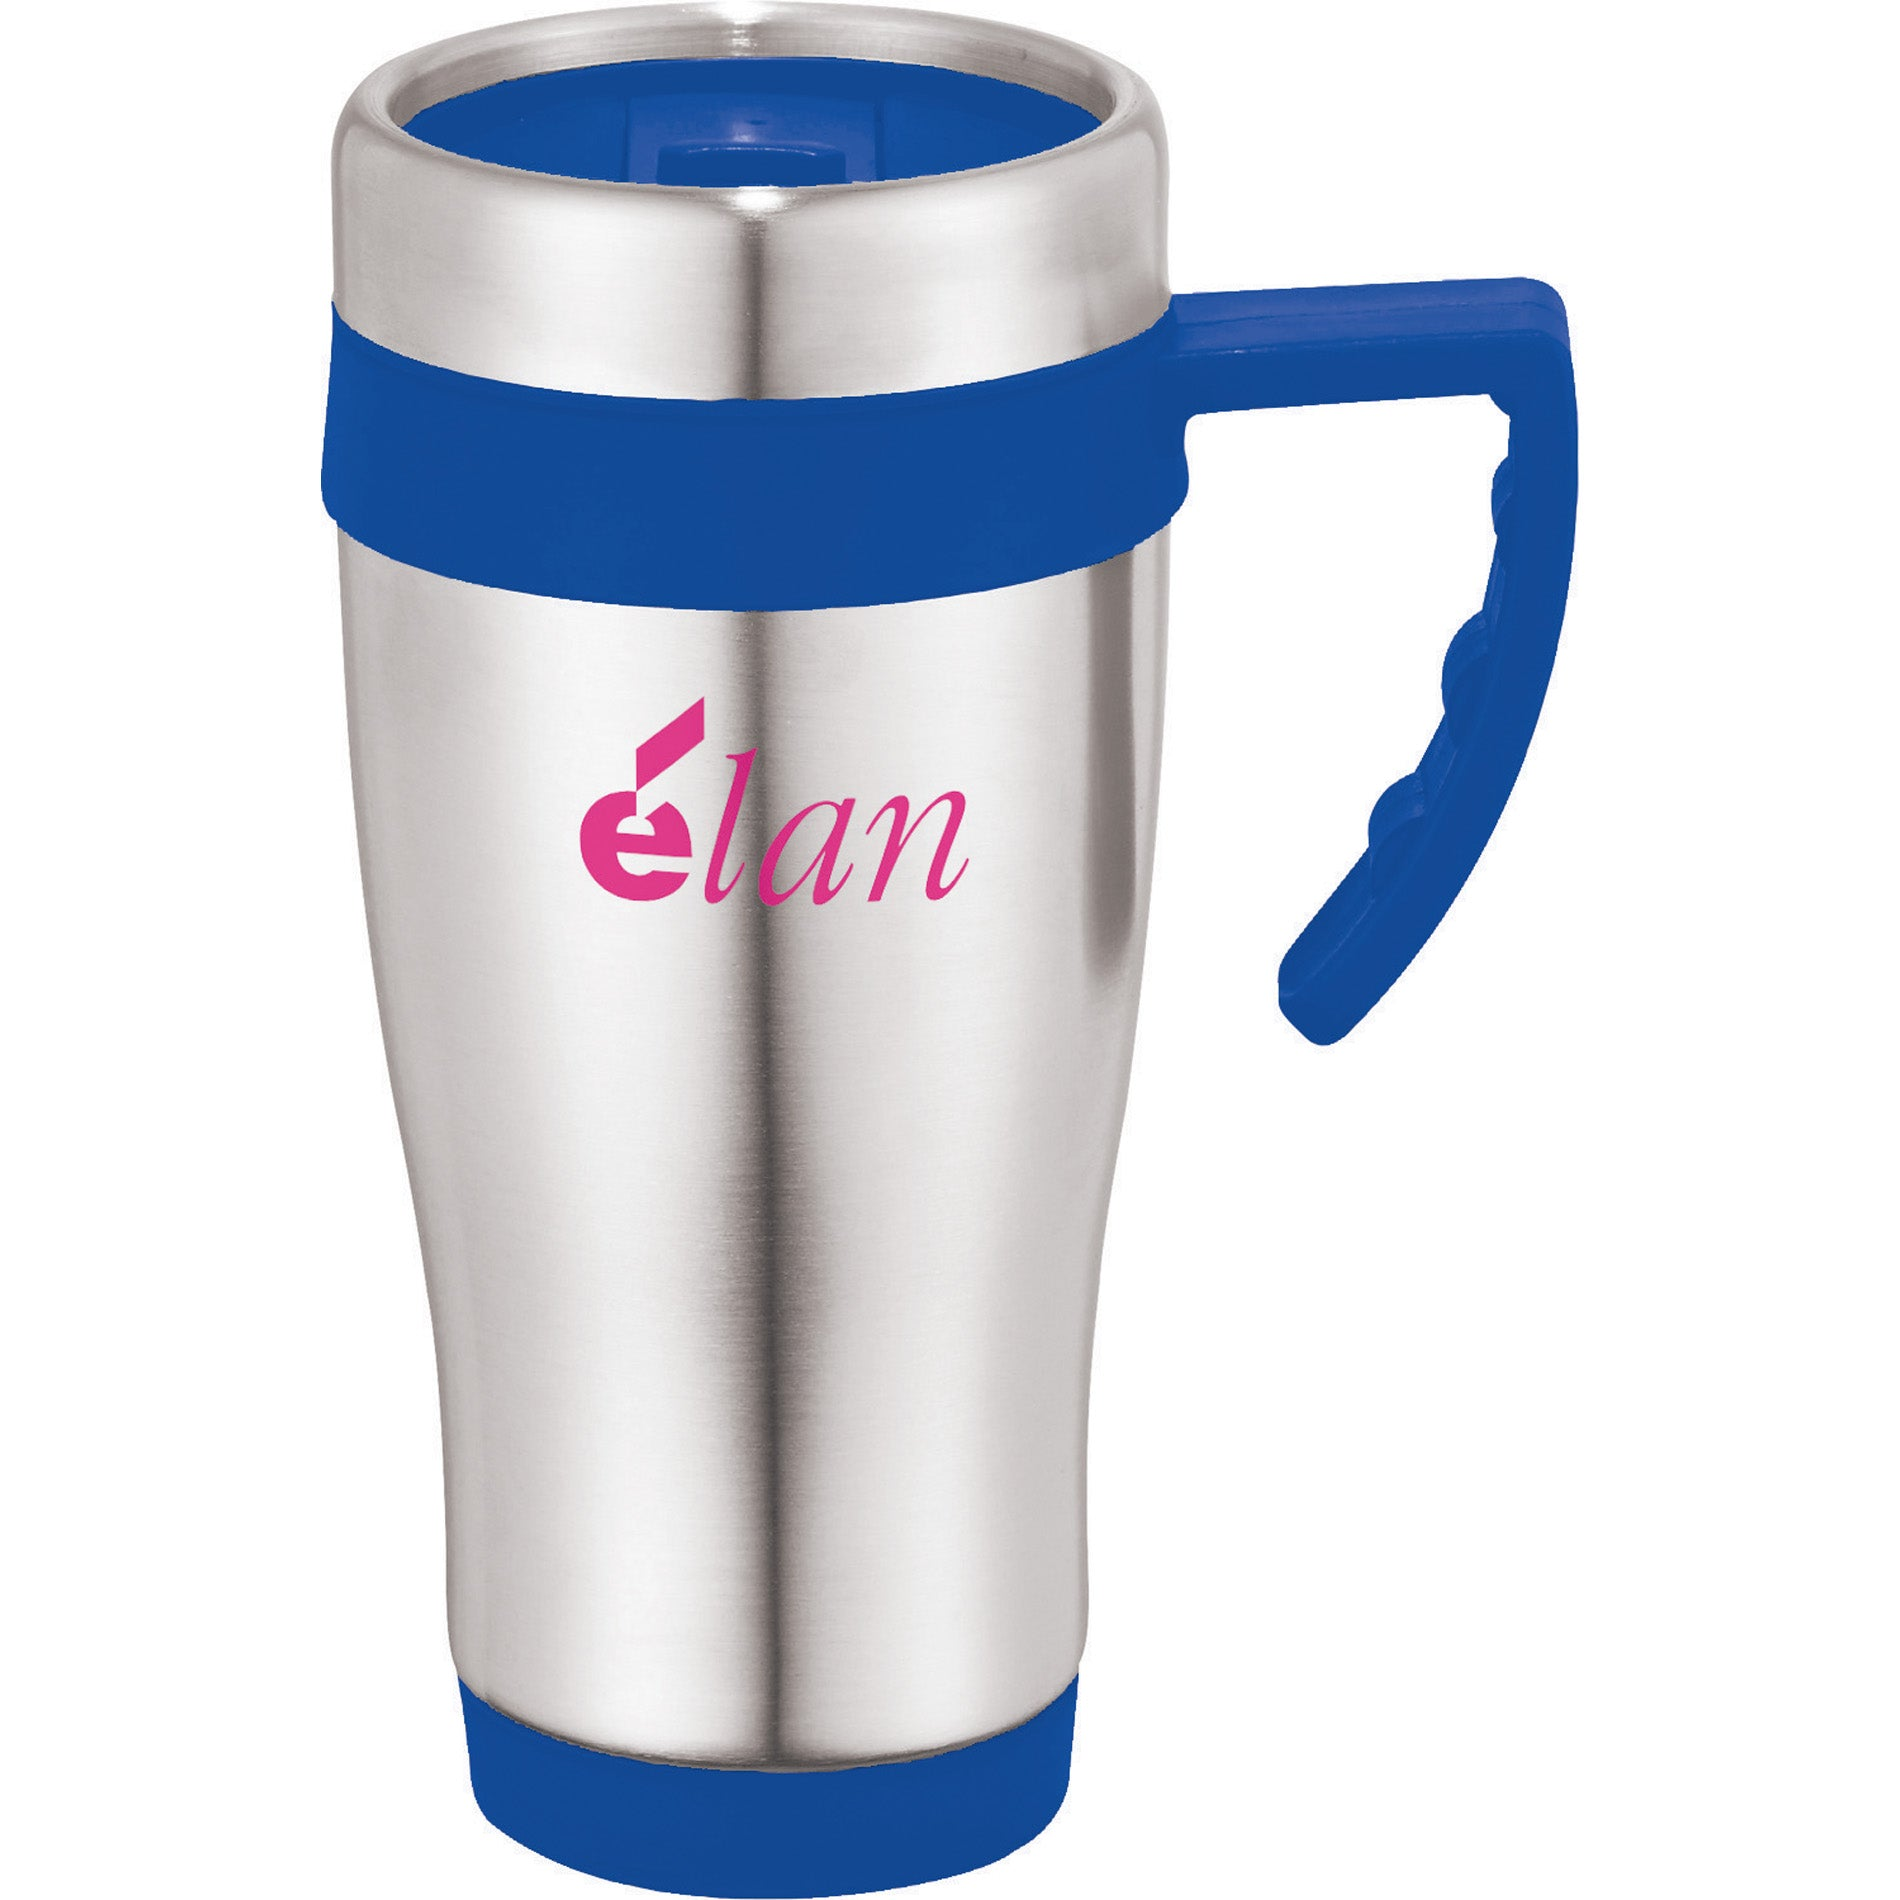 BULLET SEASIDE TRAVEL TUMBLER 15OZ